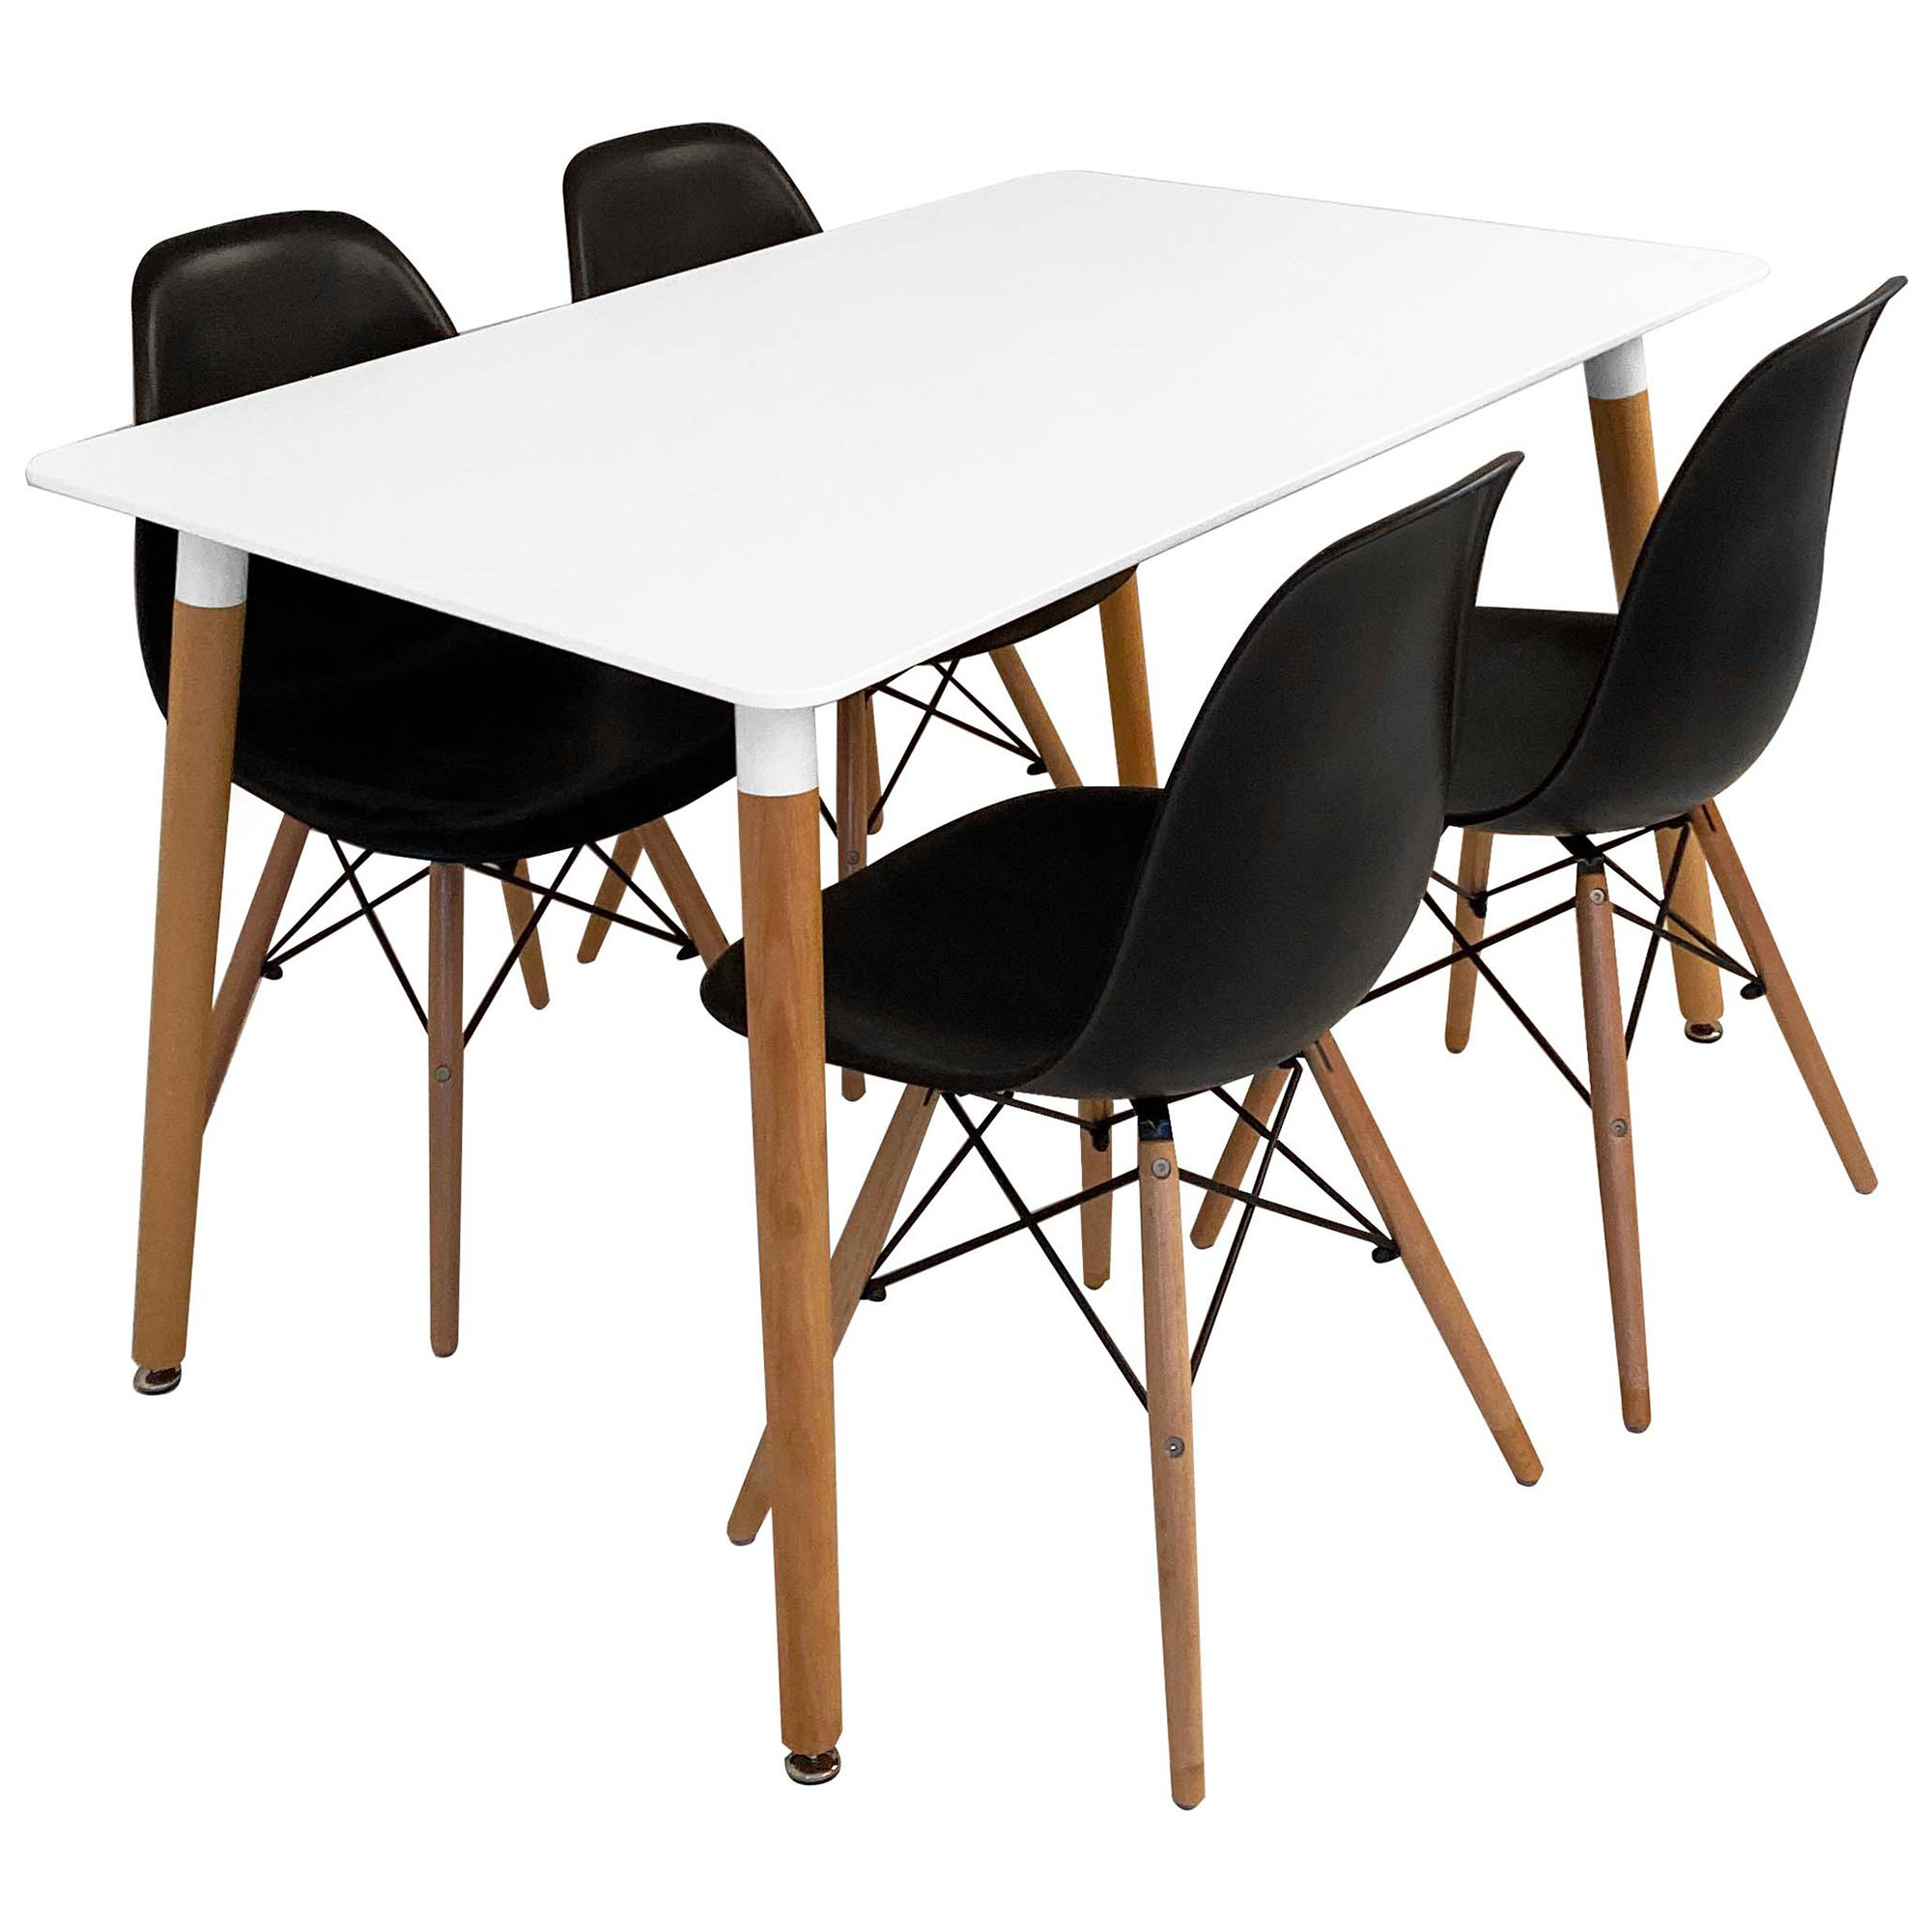 Heme 5 Piece Dining Table Set, 120cm, with Black Paris Chair